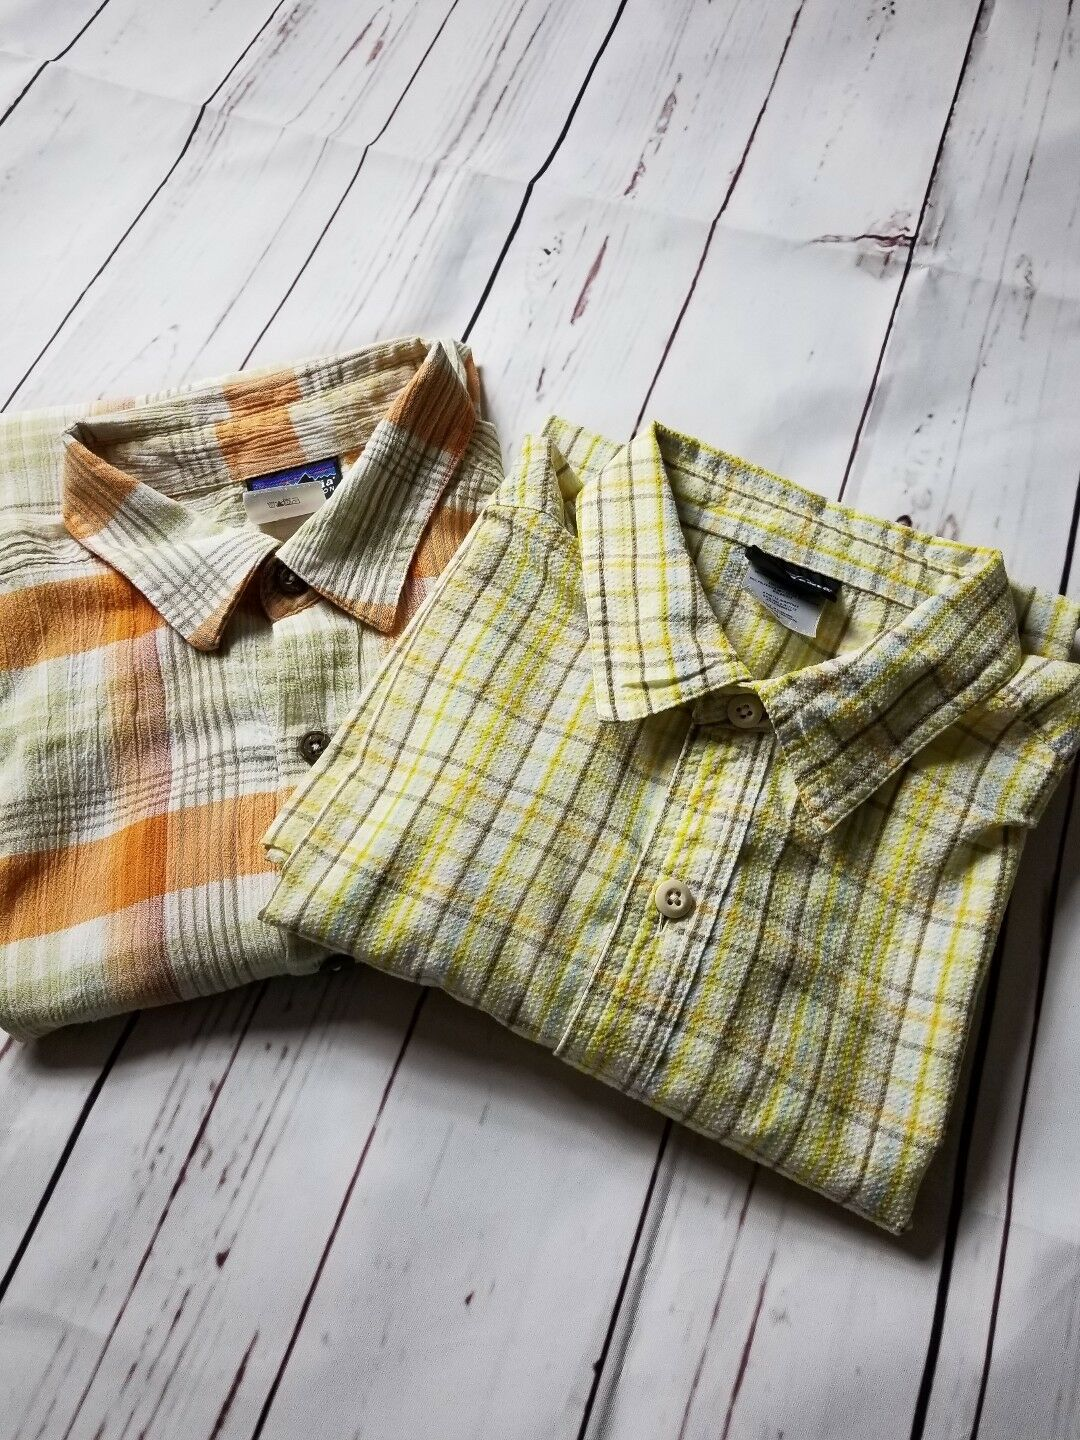 Patagonia S S Button Front Casual Shirts Men's SZ Medium Md M in  Lot of 2